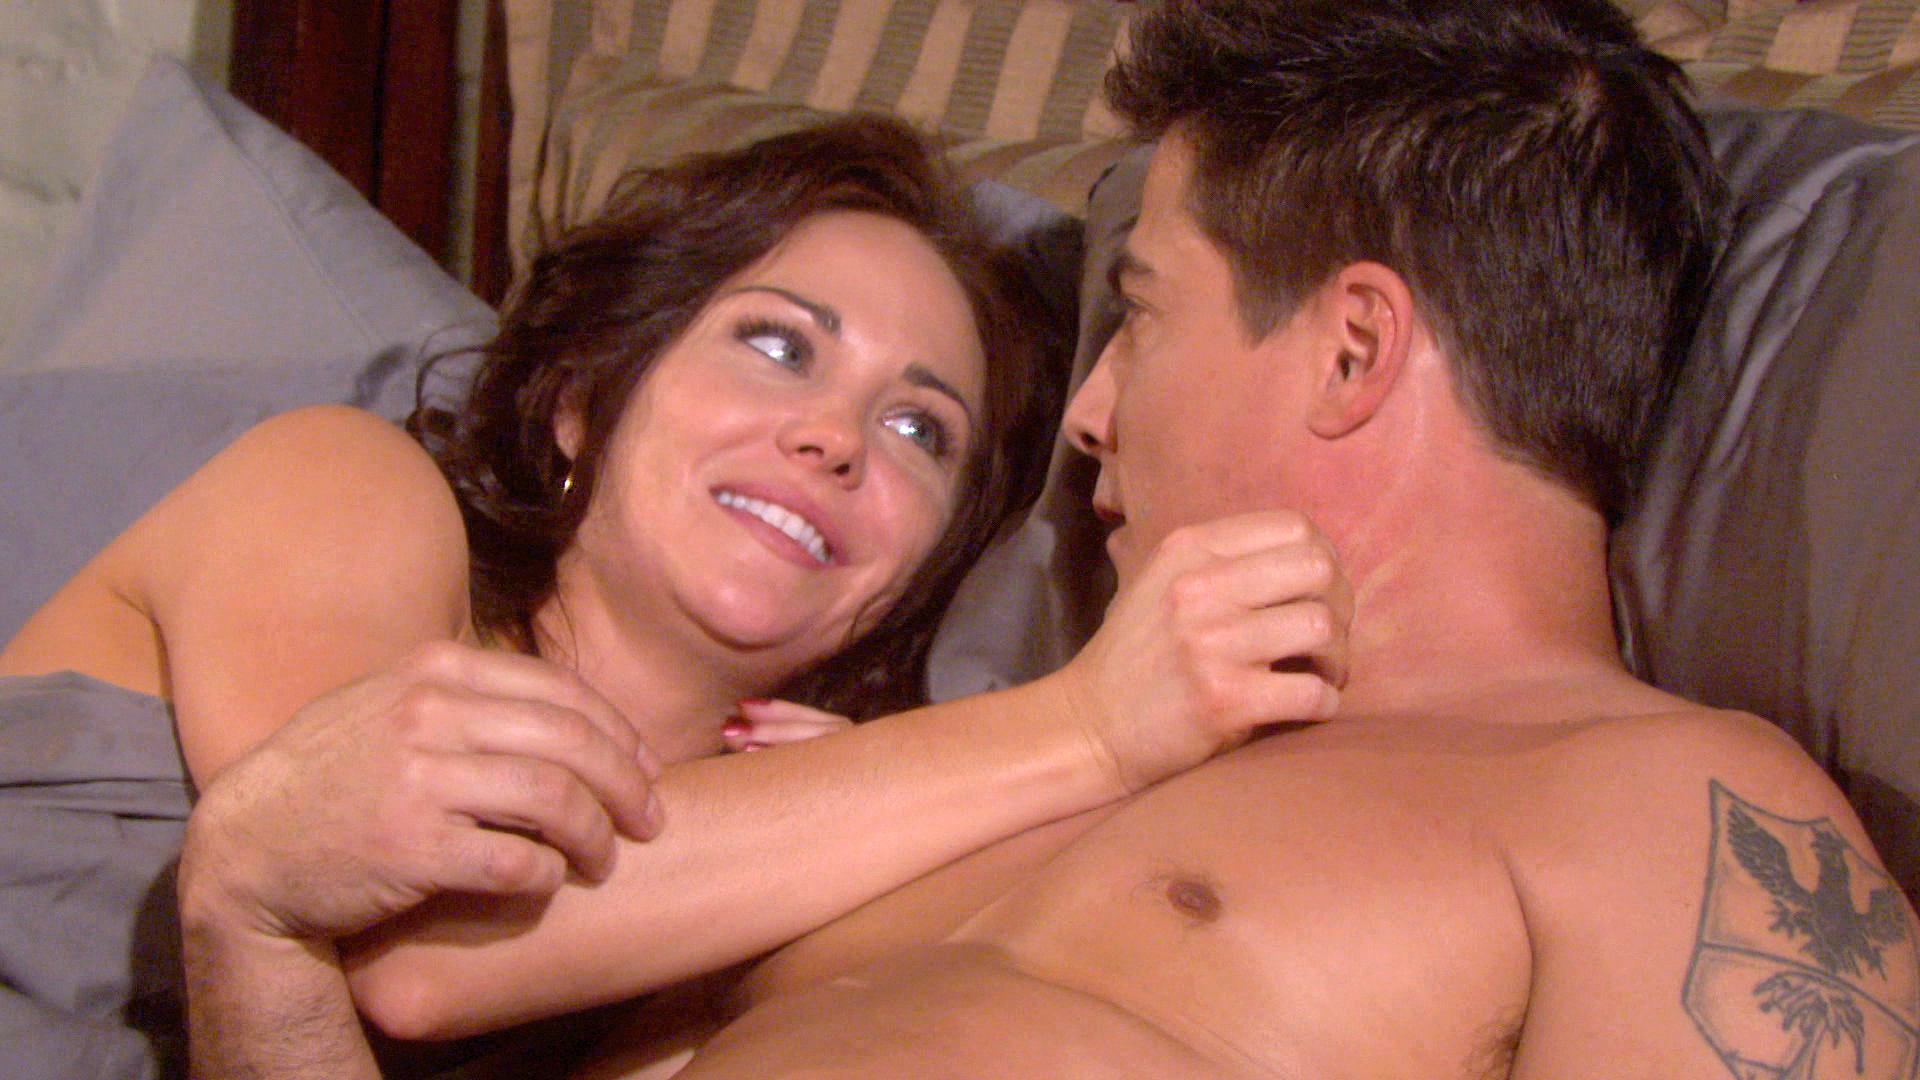 Lucas and Sheryl finally give in to their feelings.